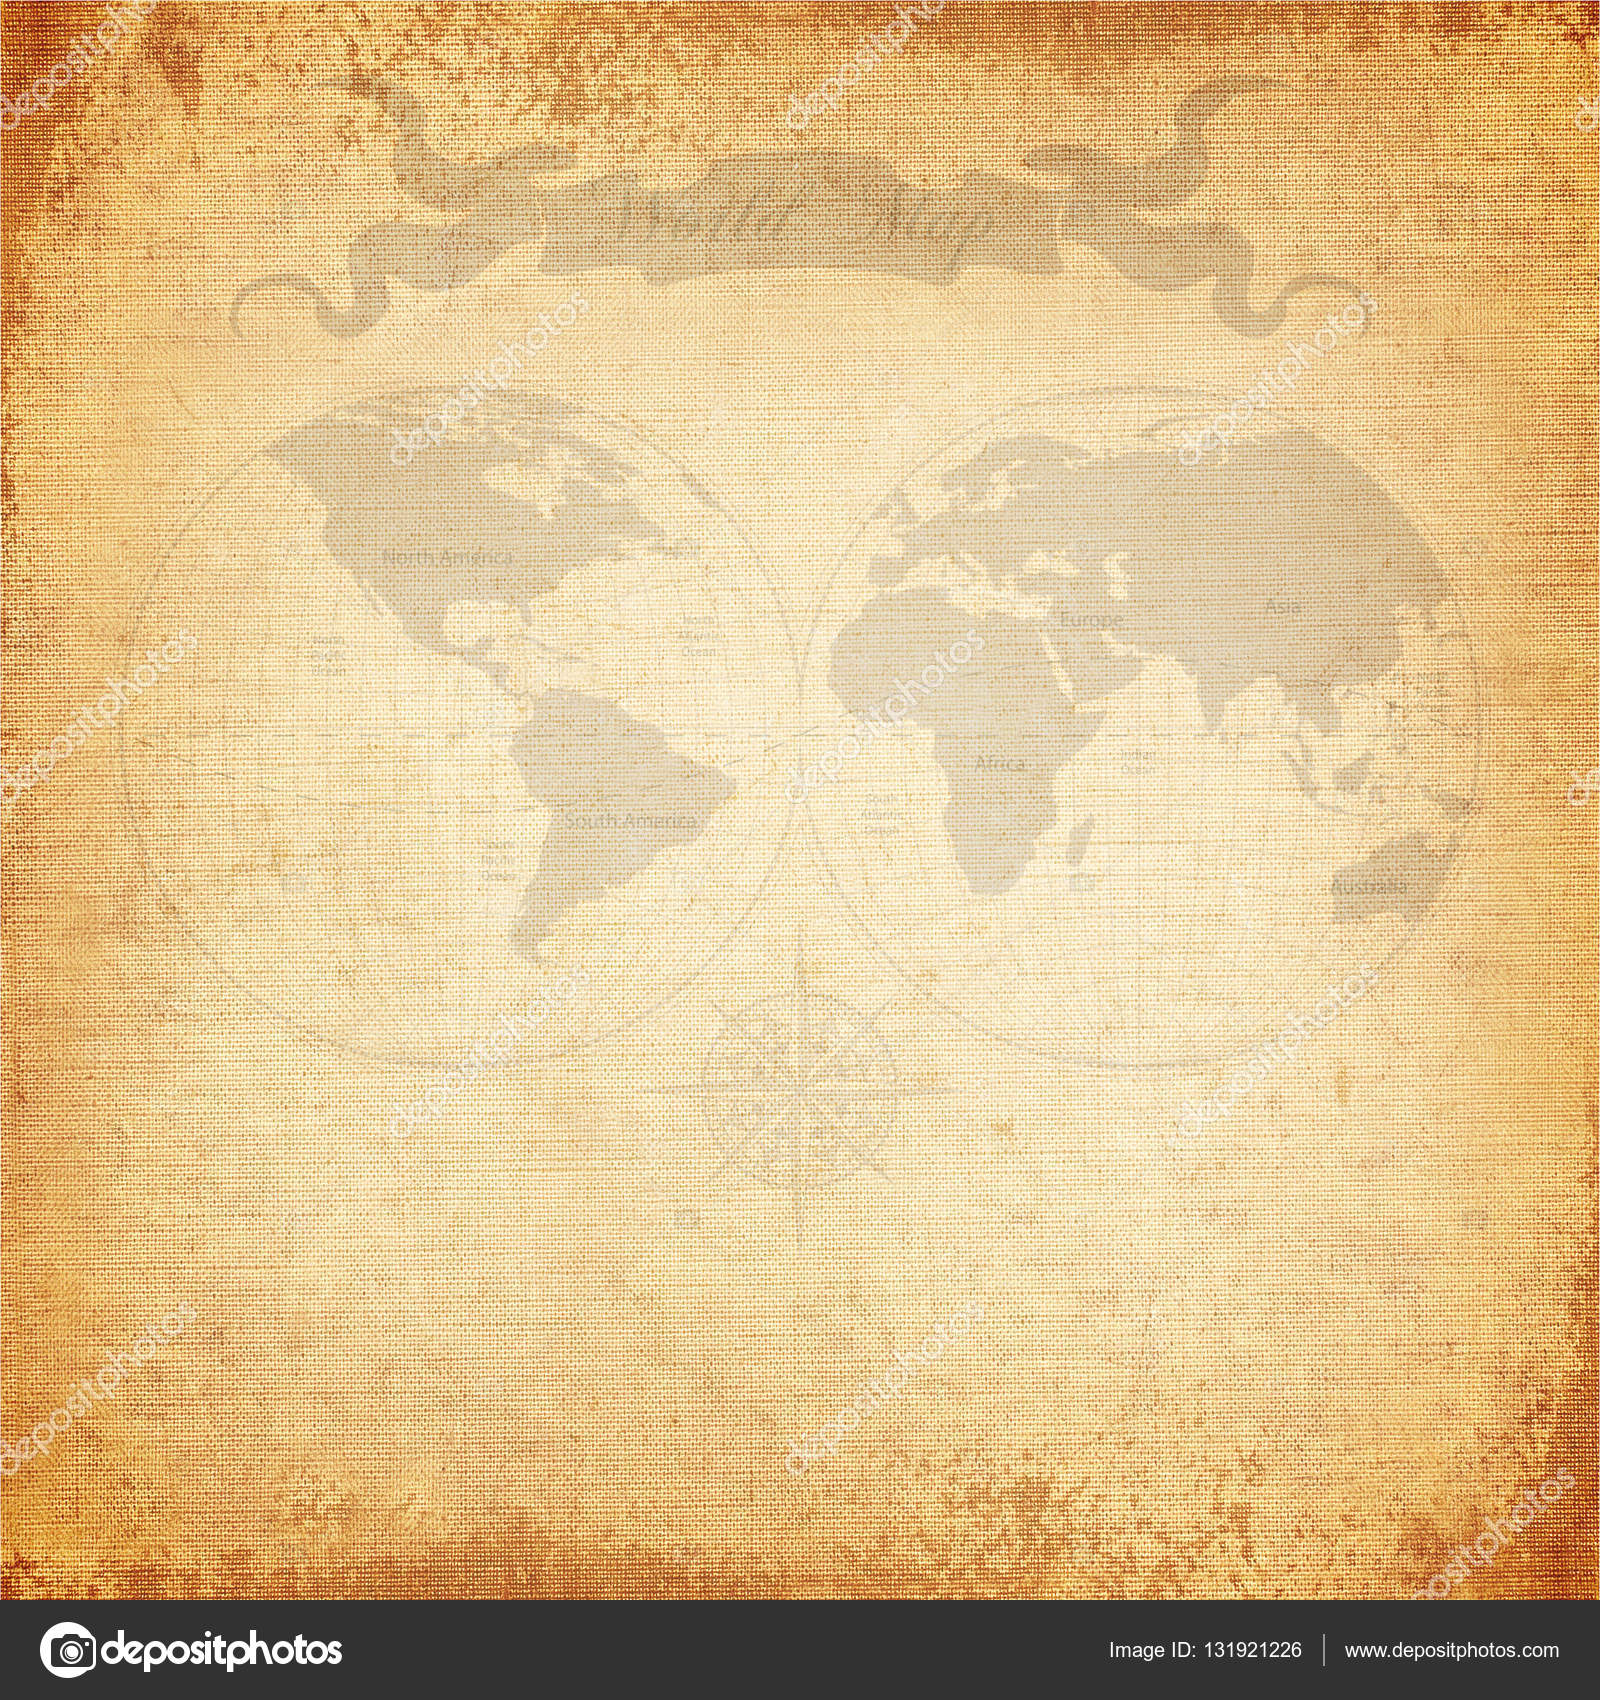 Old world map stock photo jakkapan 131921226 vintage background old world map with canvas texture photo by jakkapan gumiabroncs Gallery